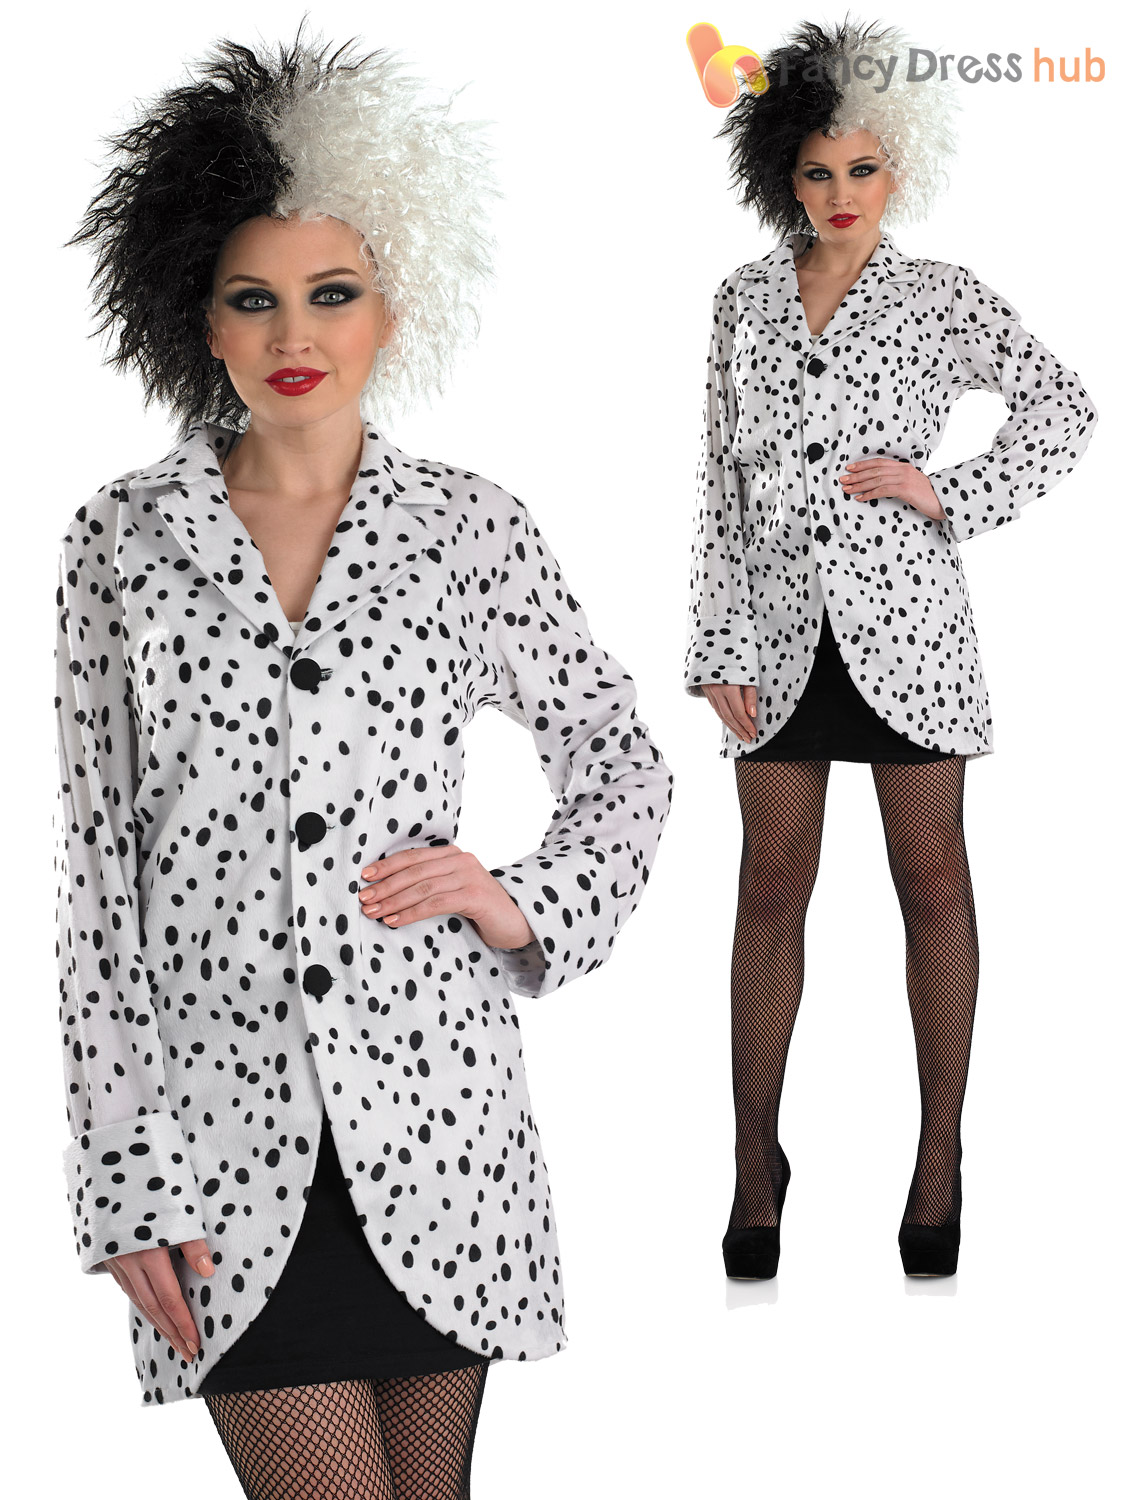 ladies cruella de ville dalmatian jacket costume adult book week day fancy dress ebay. Black Bedroom Furniture Sets. Home Design Ideas